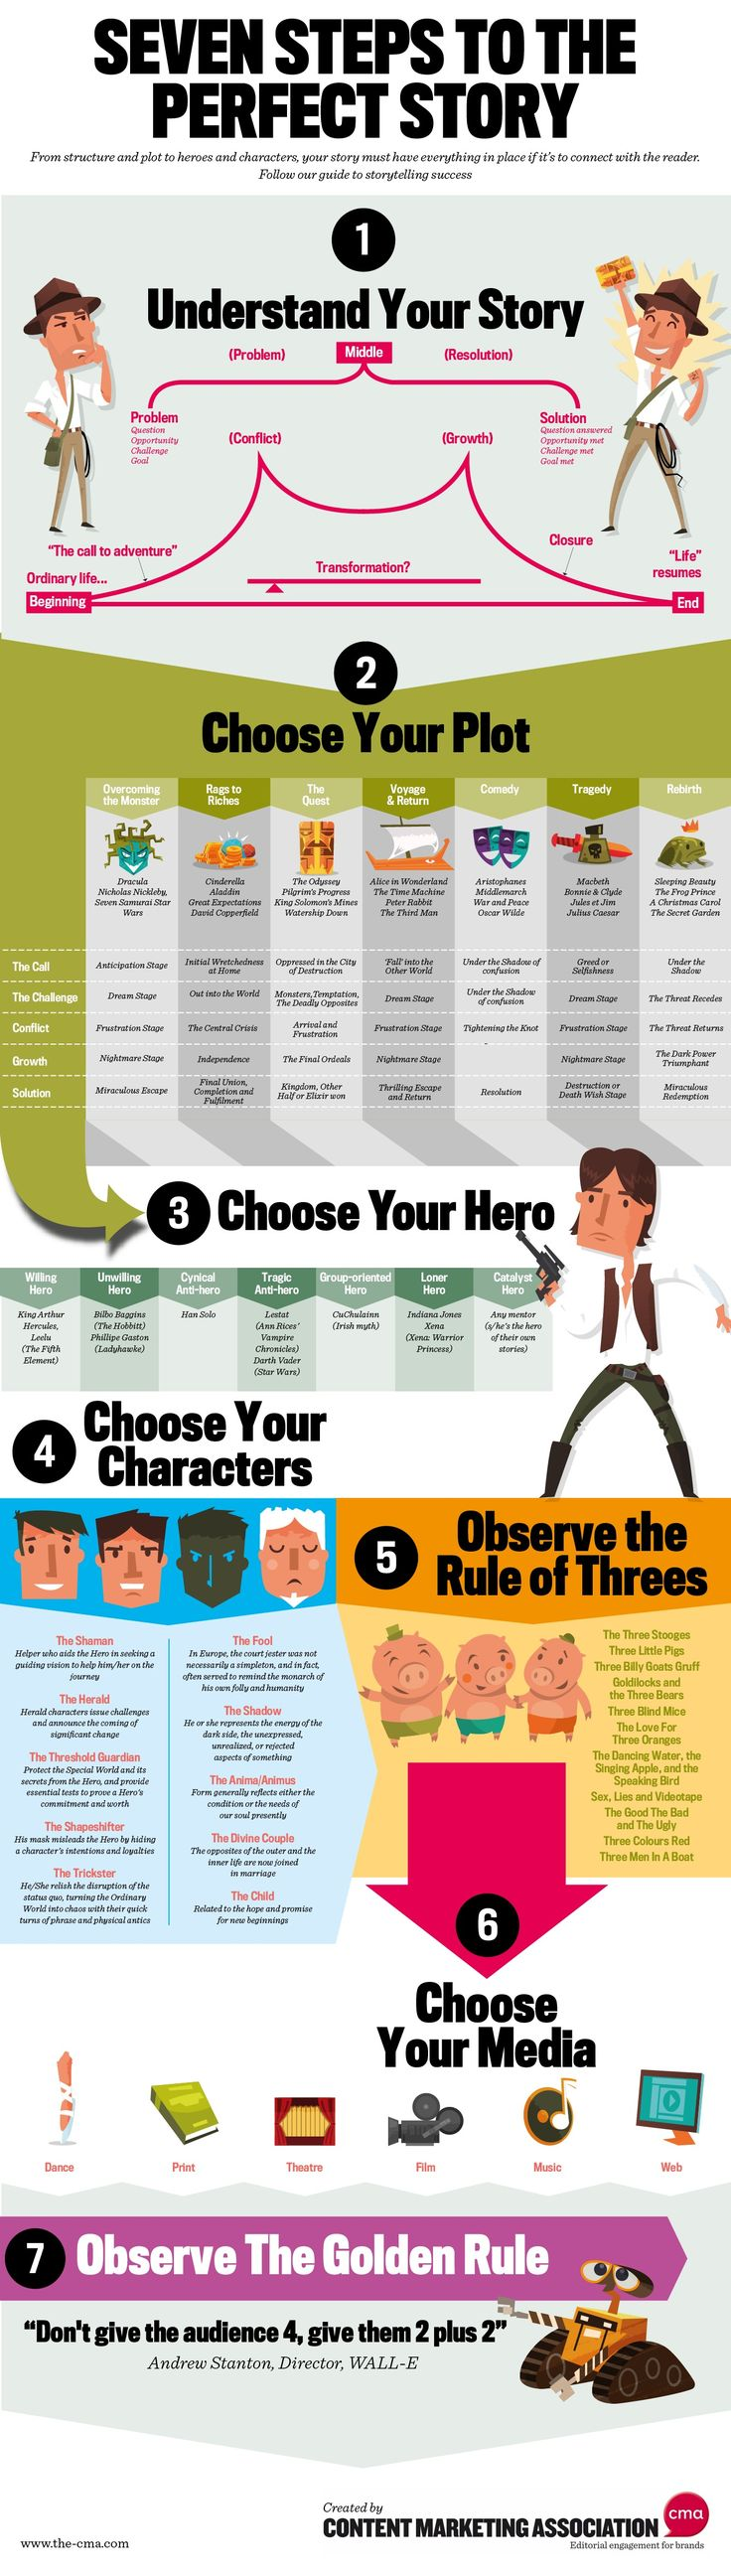 7 Steps to the Perfect Story [Fun Infographic]